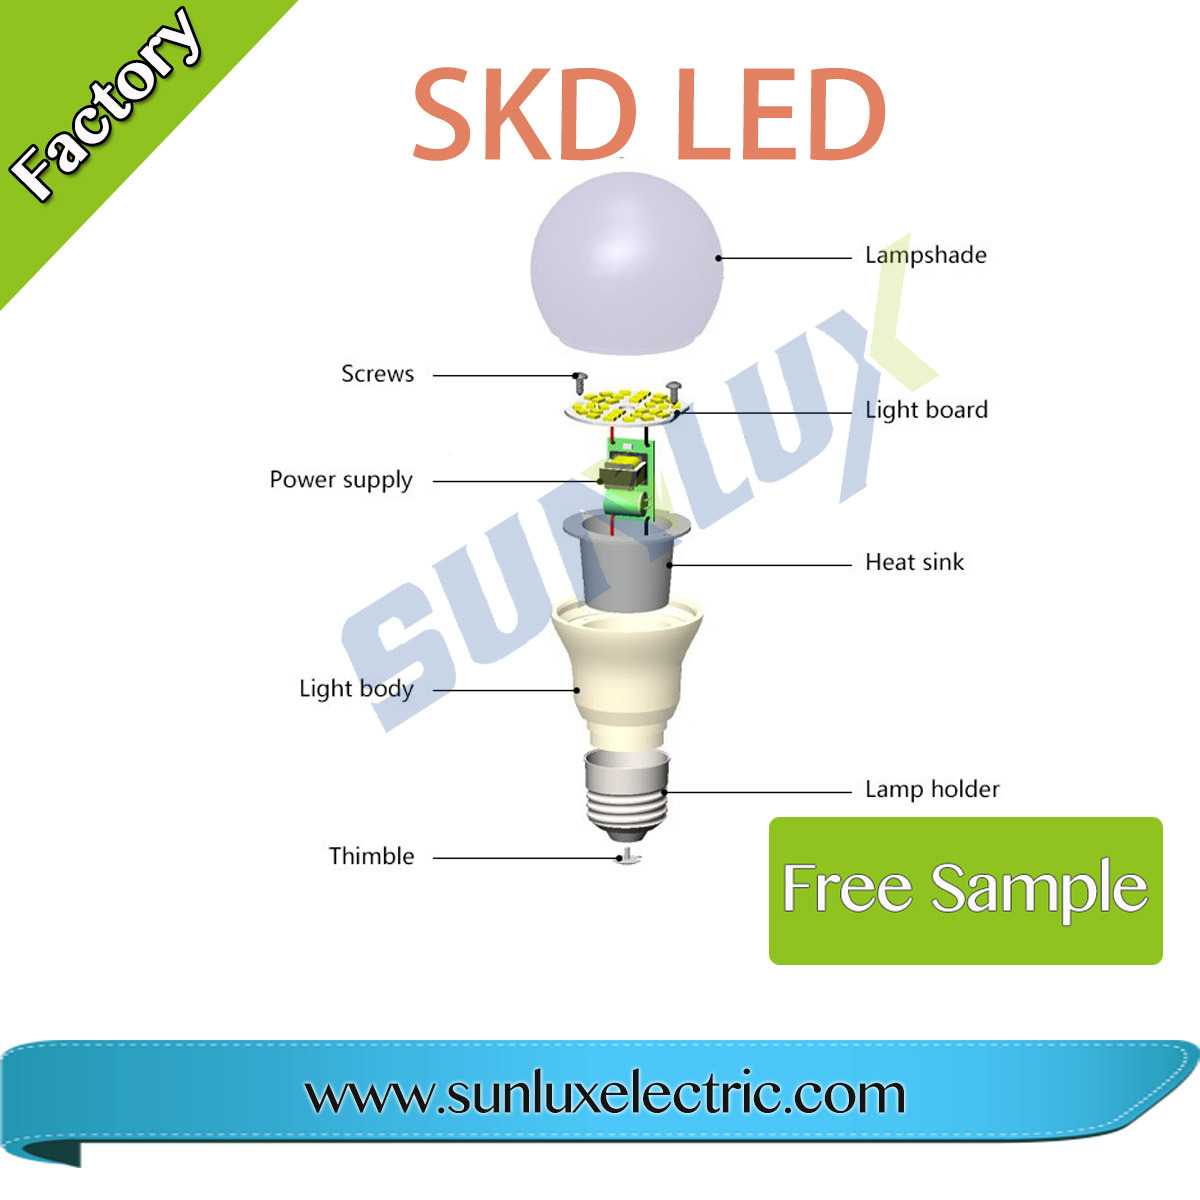 Parts Of A Cfl Bulb Free Download Compactfluorescentlightbulbsdiagram China Sunlux Aluminum Pbt 7w 12w 110v 220v 2700k 6400k Led Light Compact Fluorescent Lamp Bulbs